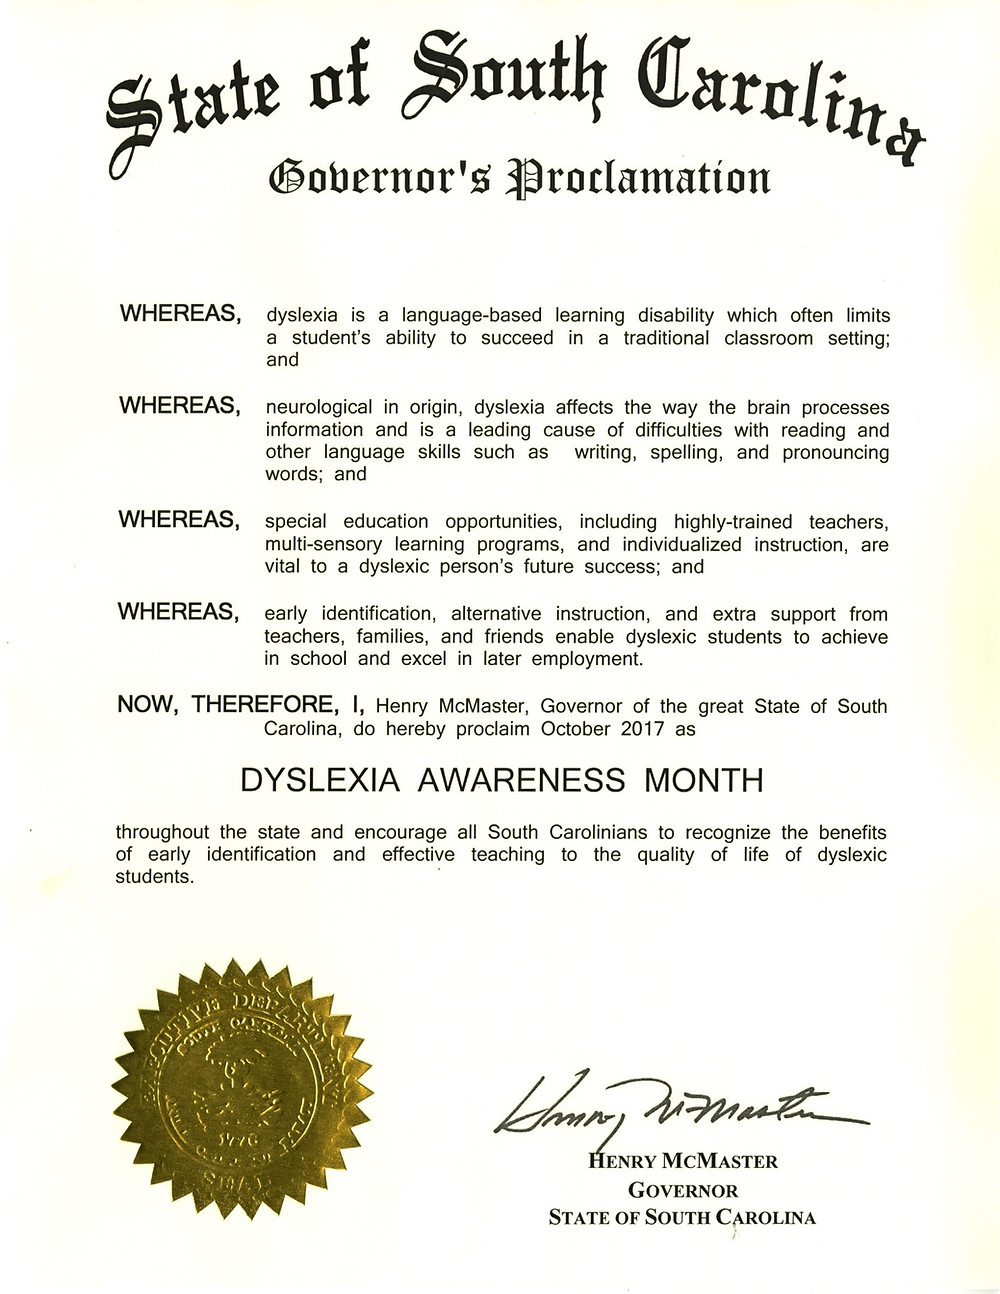 Governor McMaster has proclaimed October as Dyslexia Awareness Month for the state of South Carolina.